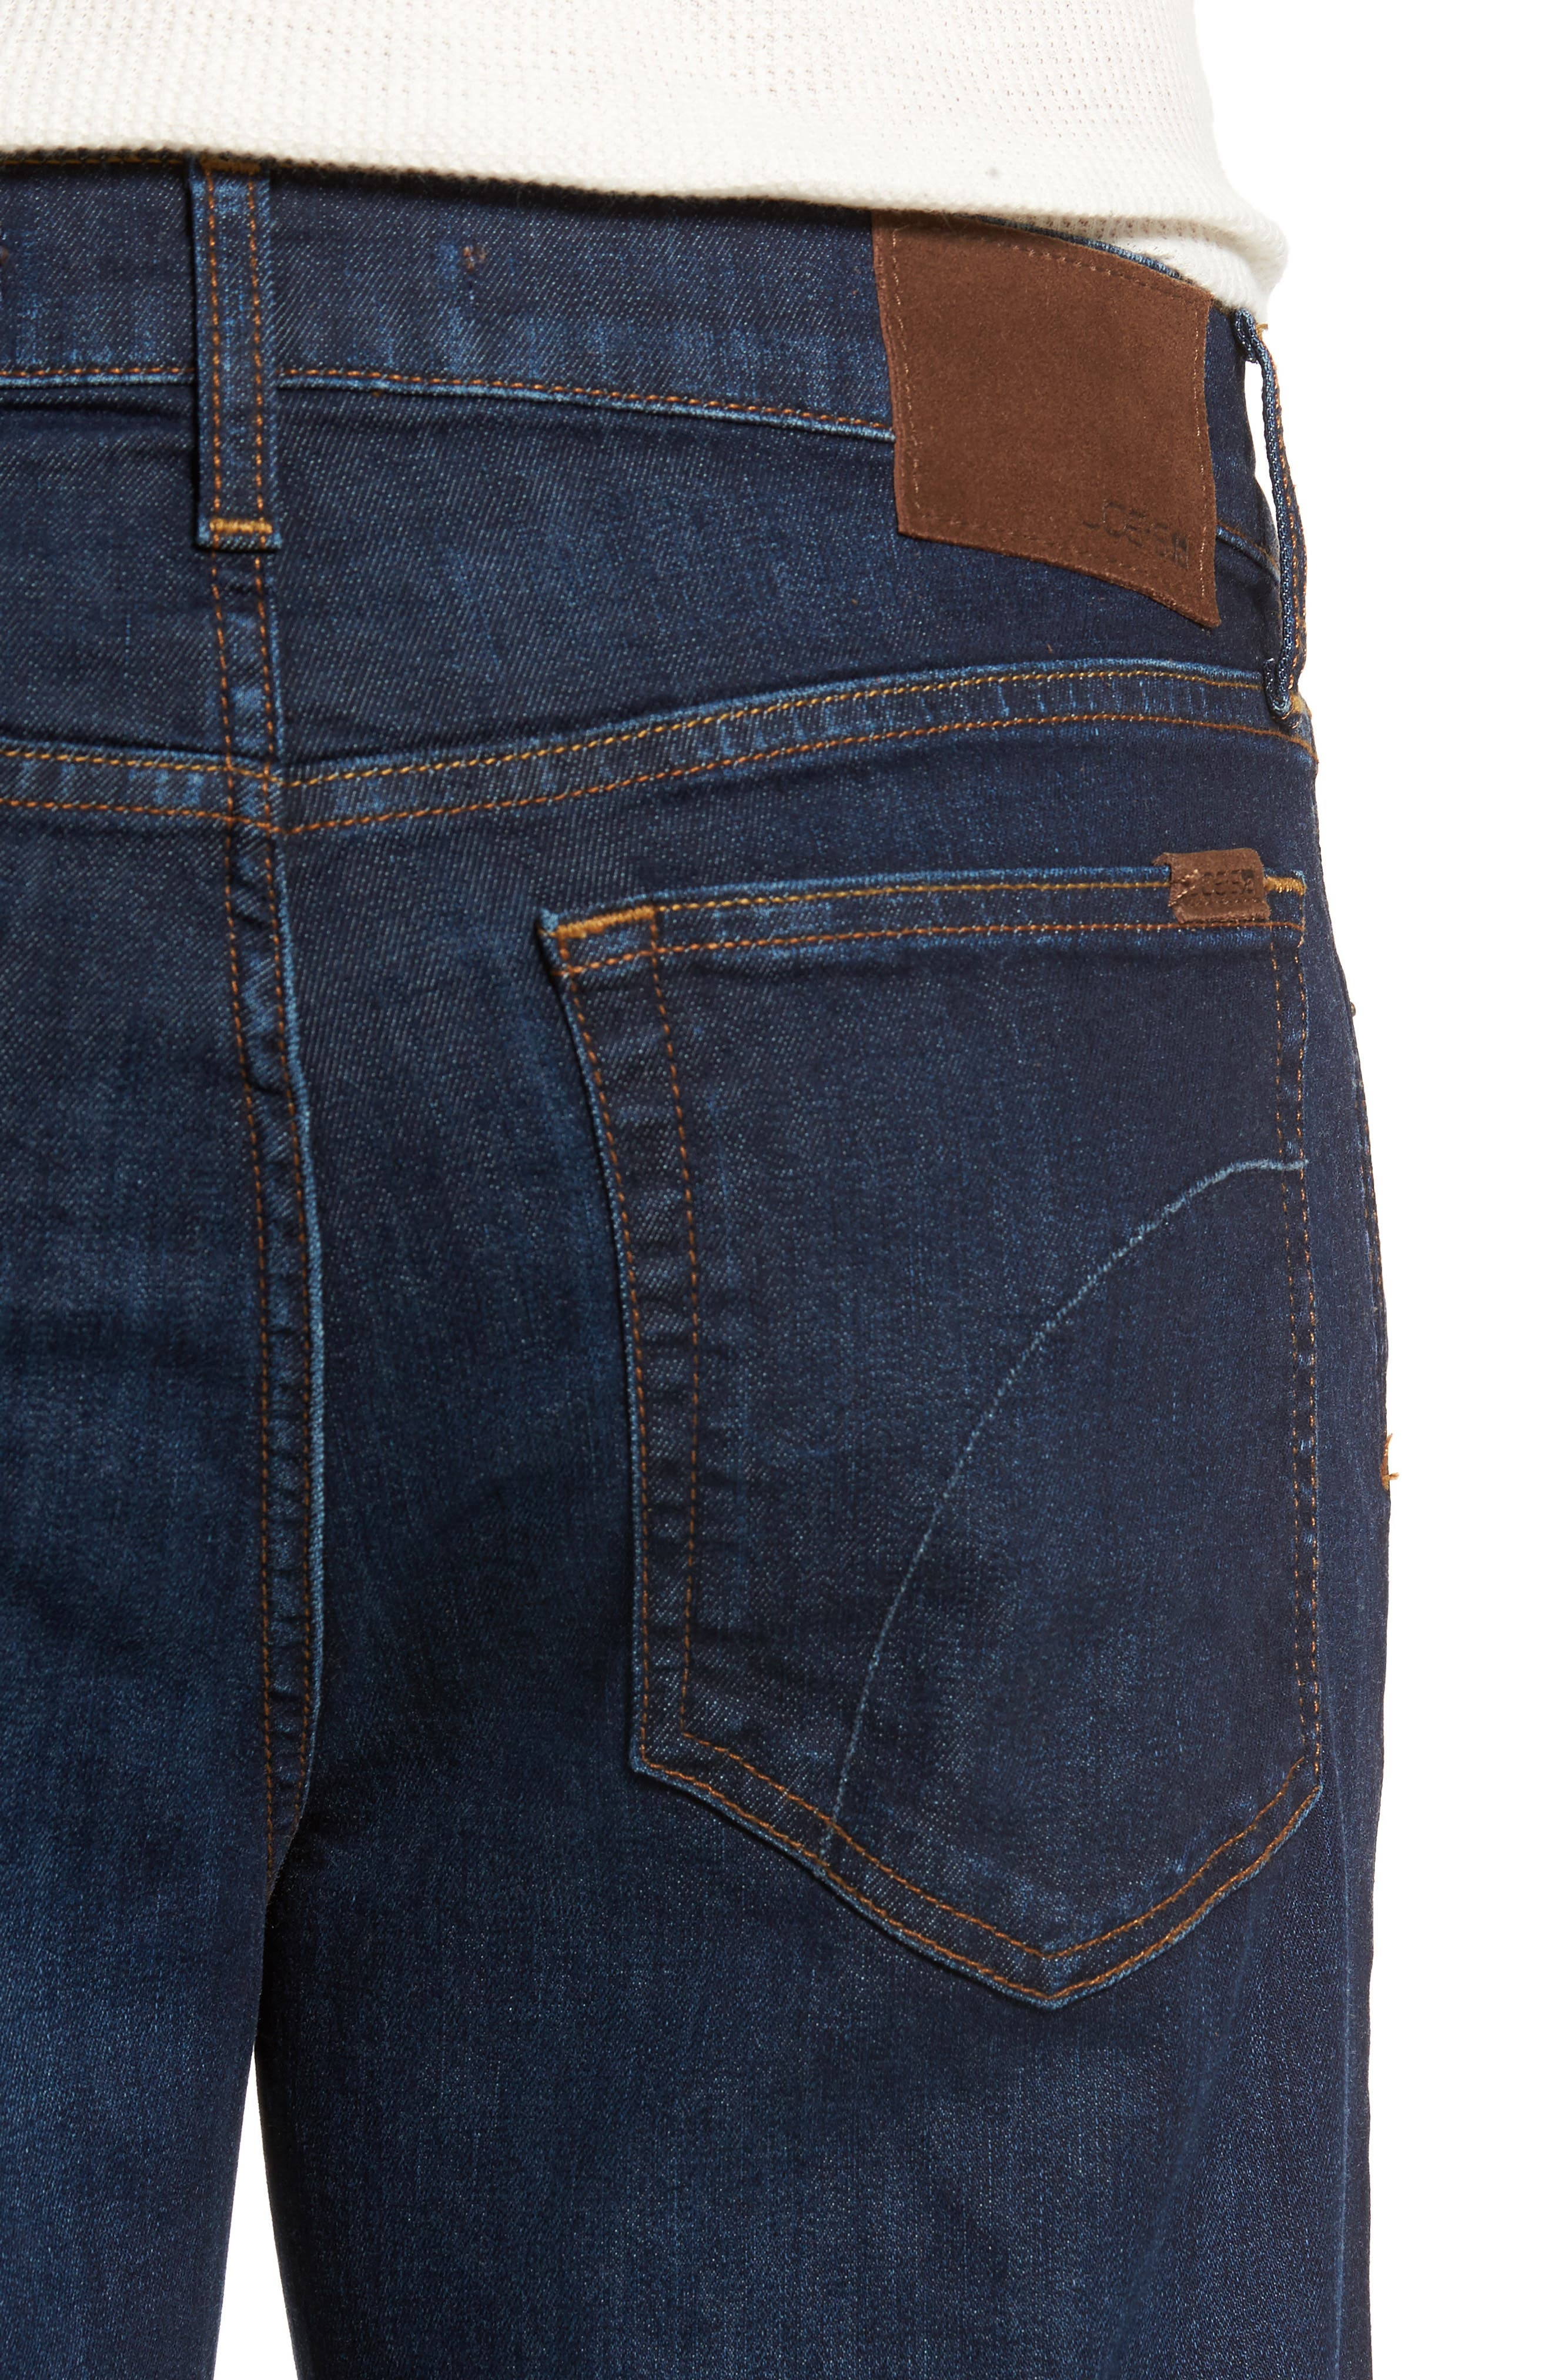 Classic Straight Fit Jeans,                             Alternate thumbnail 4, color,                             402